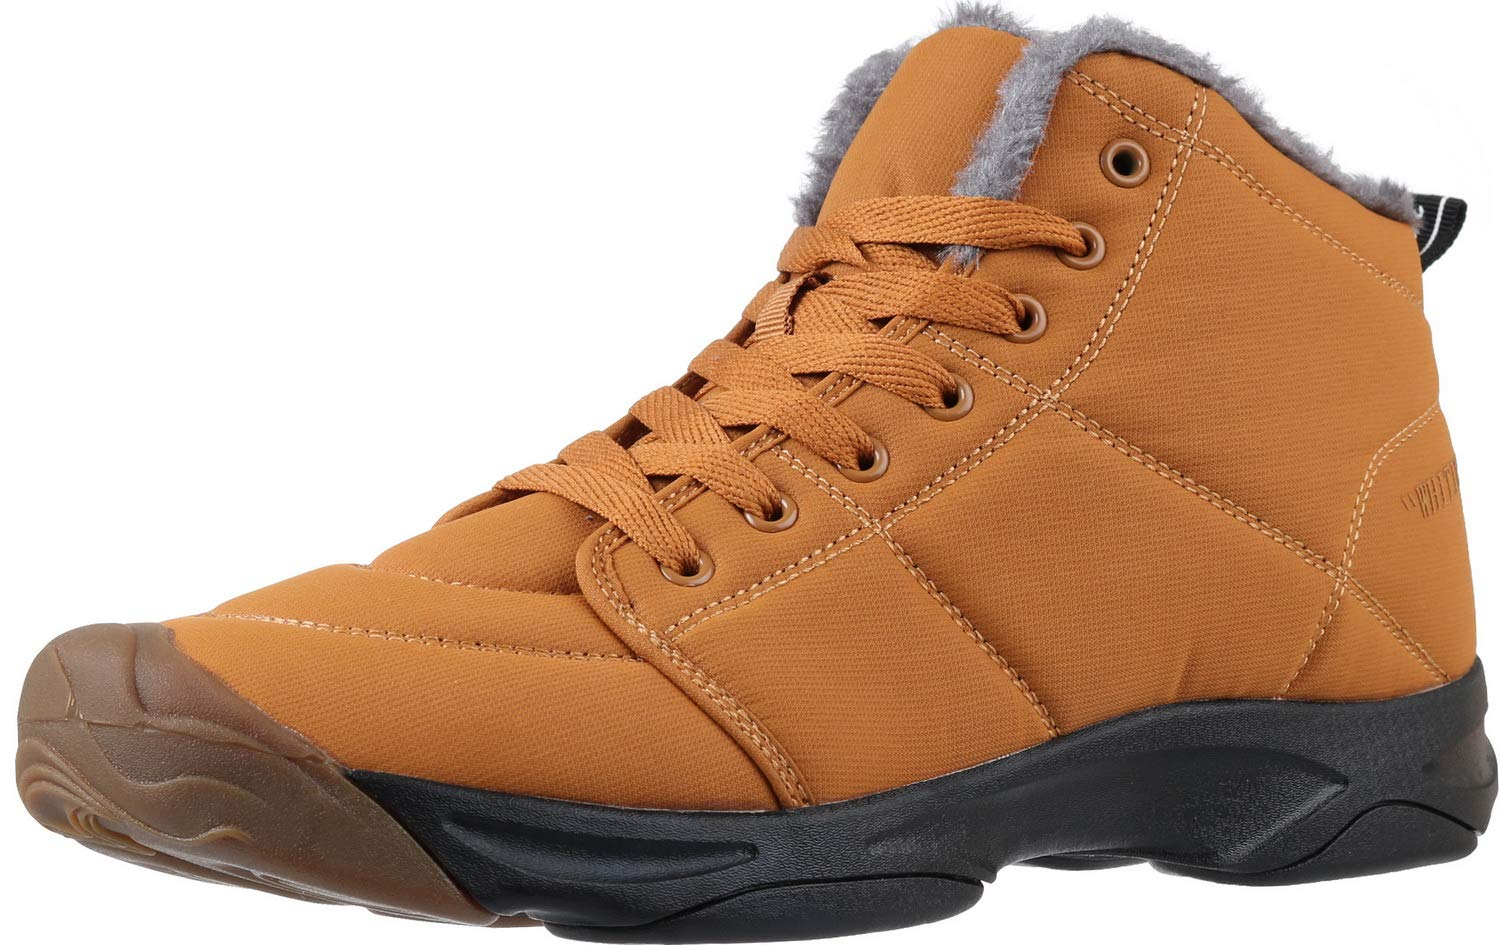 WHITIN Men's Winter Shoes Snow Boots Casual Outdoor for Cold Weather Warm Work Insulated Fully Fur Lined Hiking Waterproof Lightweight Lace Up Non Anti-Slip Brown Tan Size 8